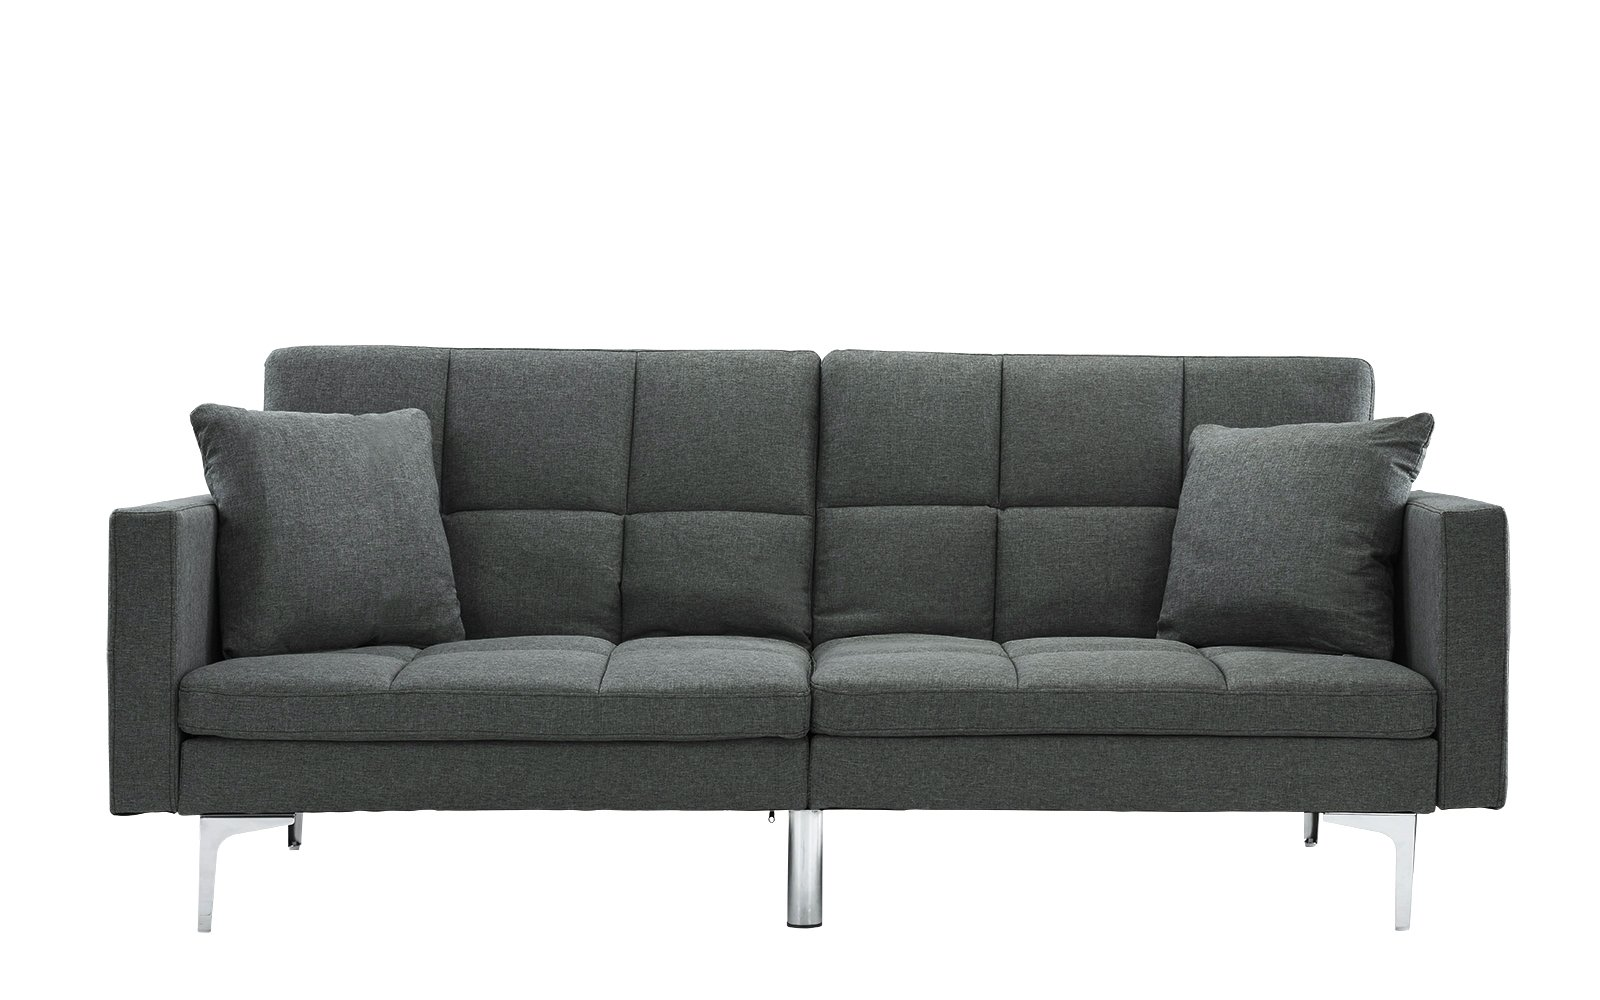 Super Savion Contemporary Box Tufted Sleeper Futon Sofas For Cjindustries Chair Design For Home Cjindustriesco